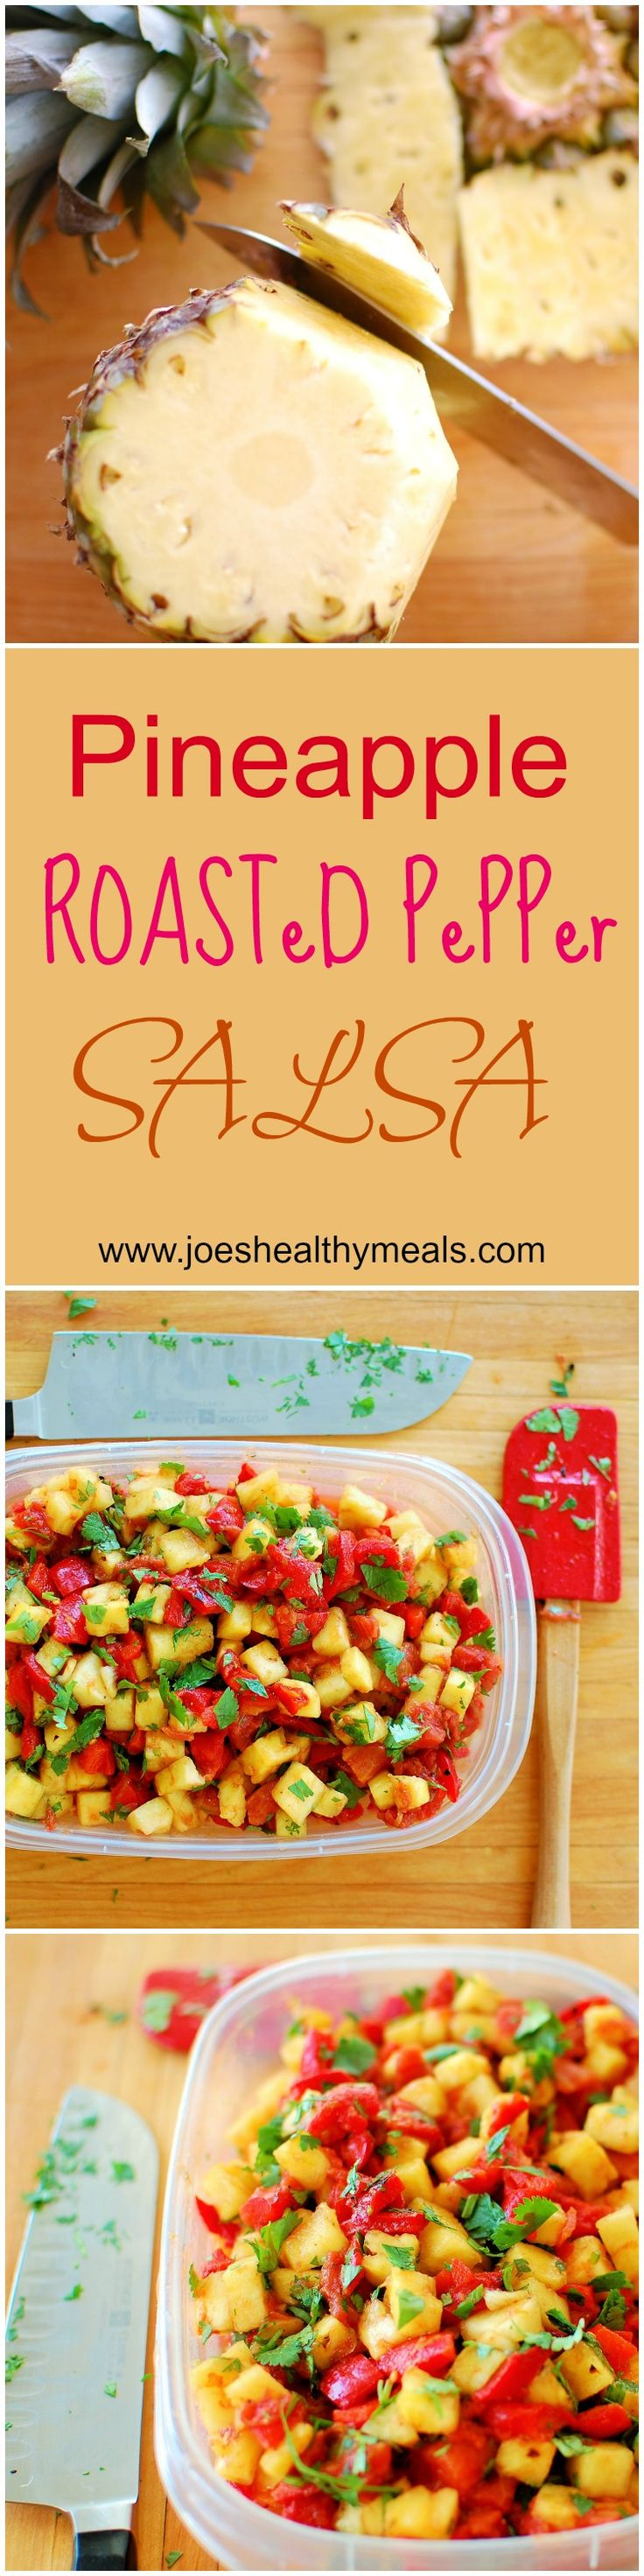 Pineapple and roasted red Peppers salsa! http://www.joeshealthymeals.com/2014/12/20/pineapple-roasted-pepper-salsa/